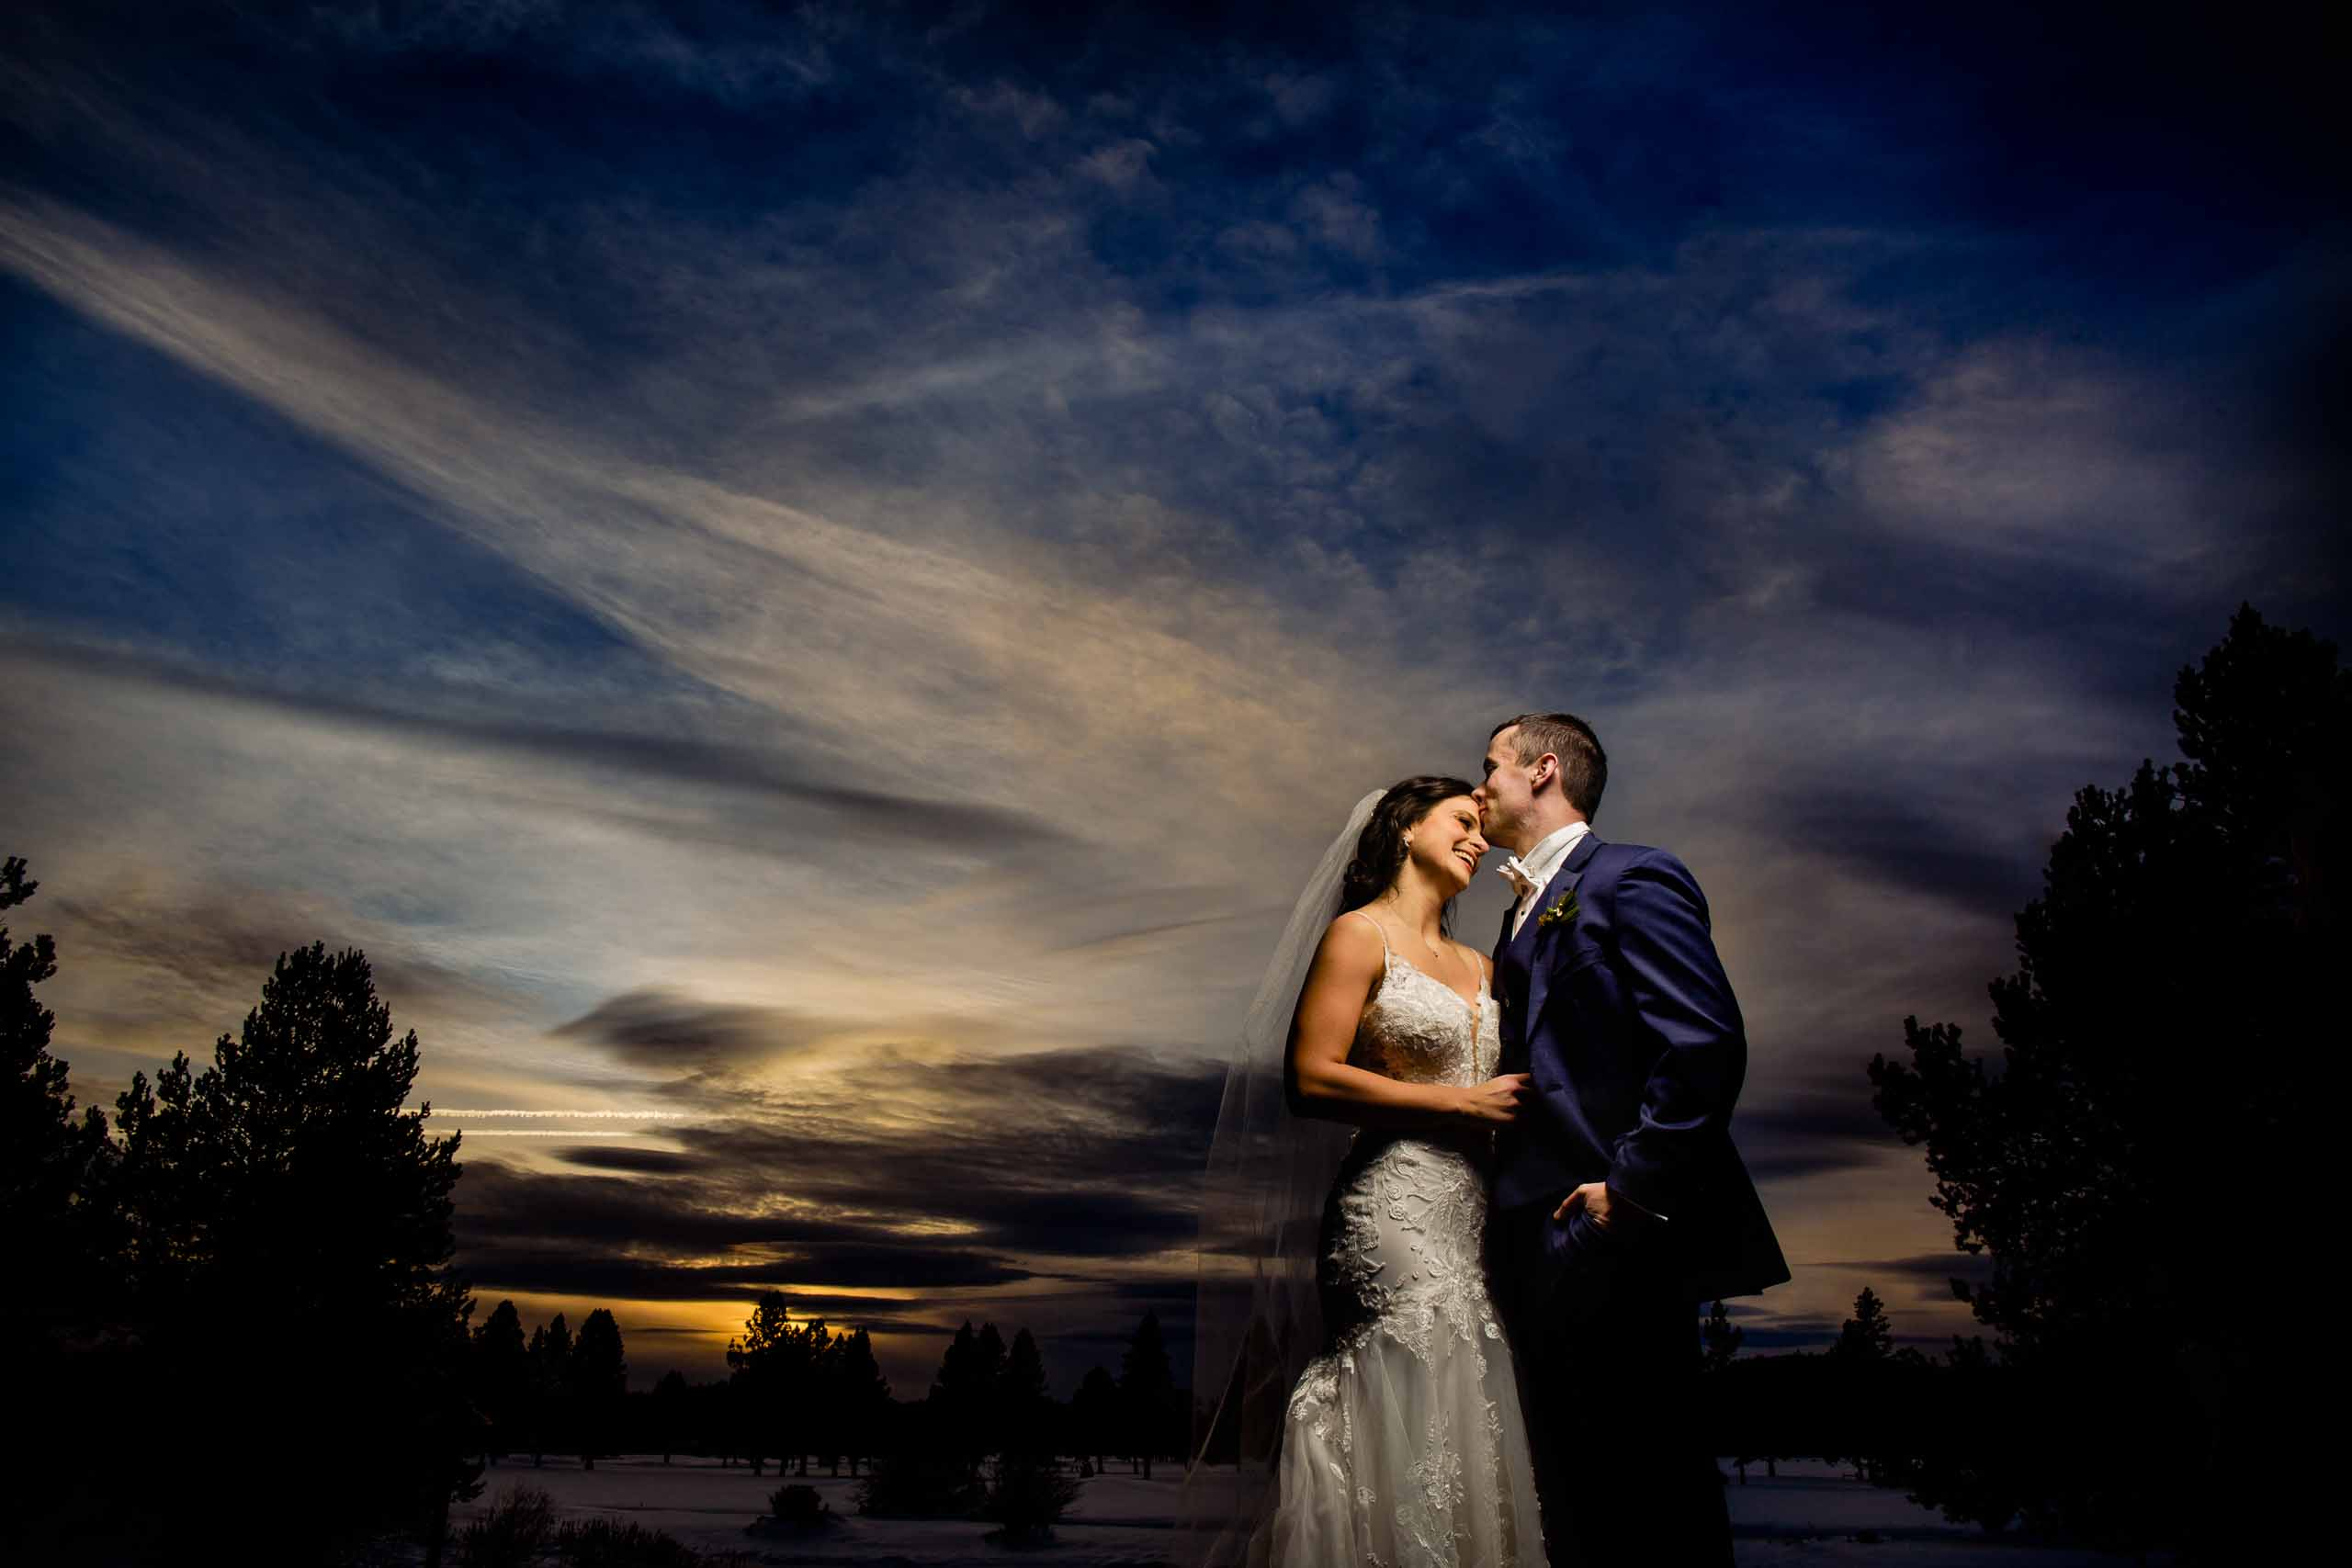 Bride and groom portrait with beautiful light at sunset at Sunriver Resort during their winter wedding